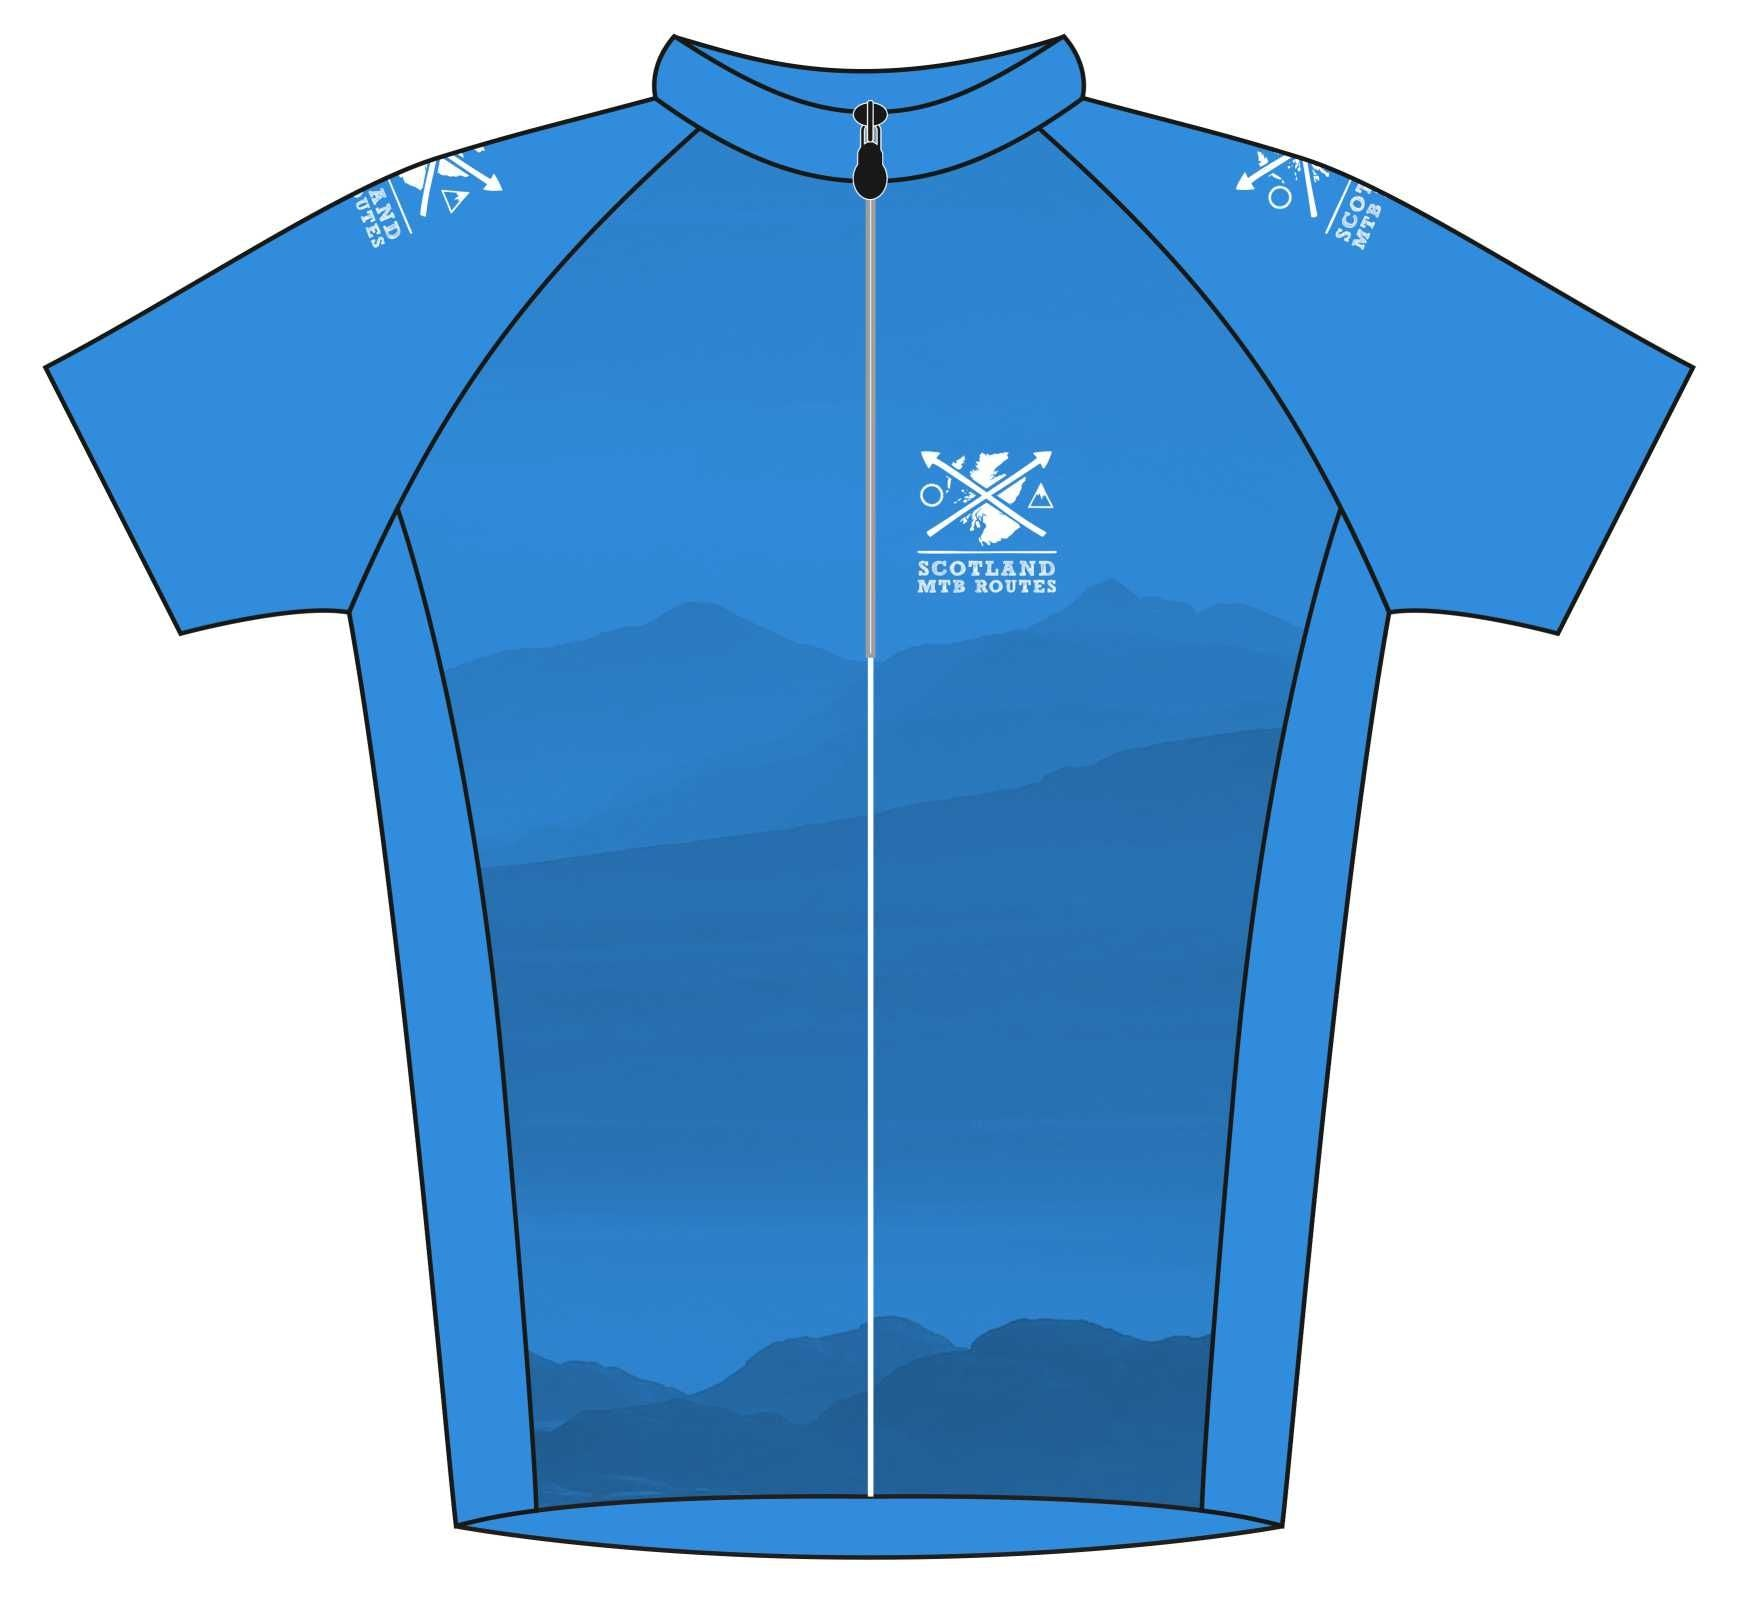 Scotland MTB Routes Enduro Cycle Jersey Front